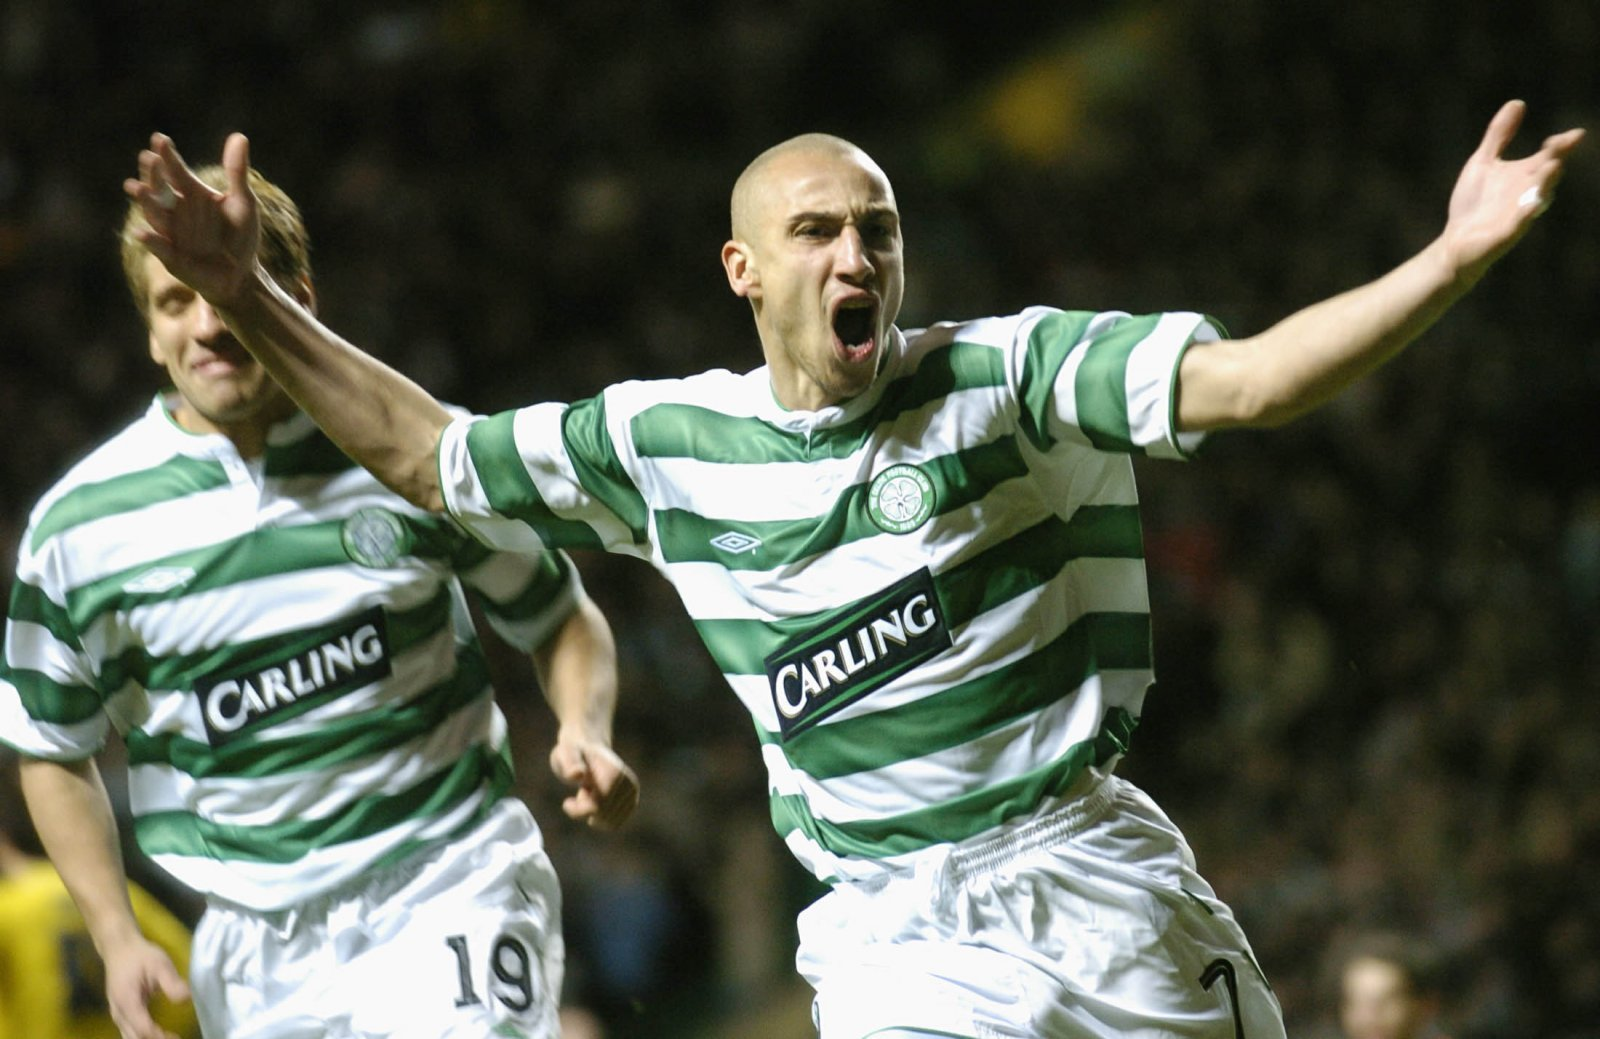 Celtic: Fans react to Henrik Larsson's appearance at Southend game